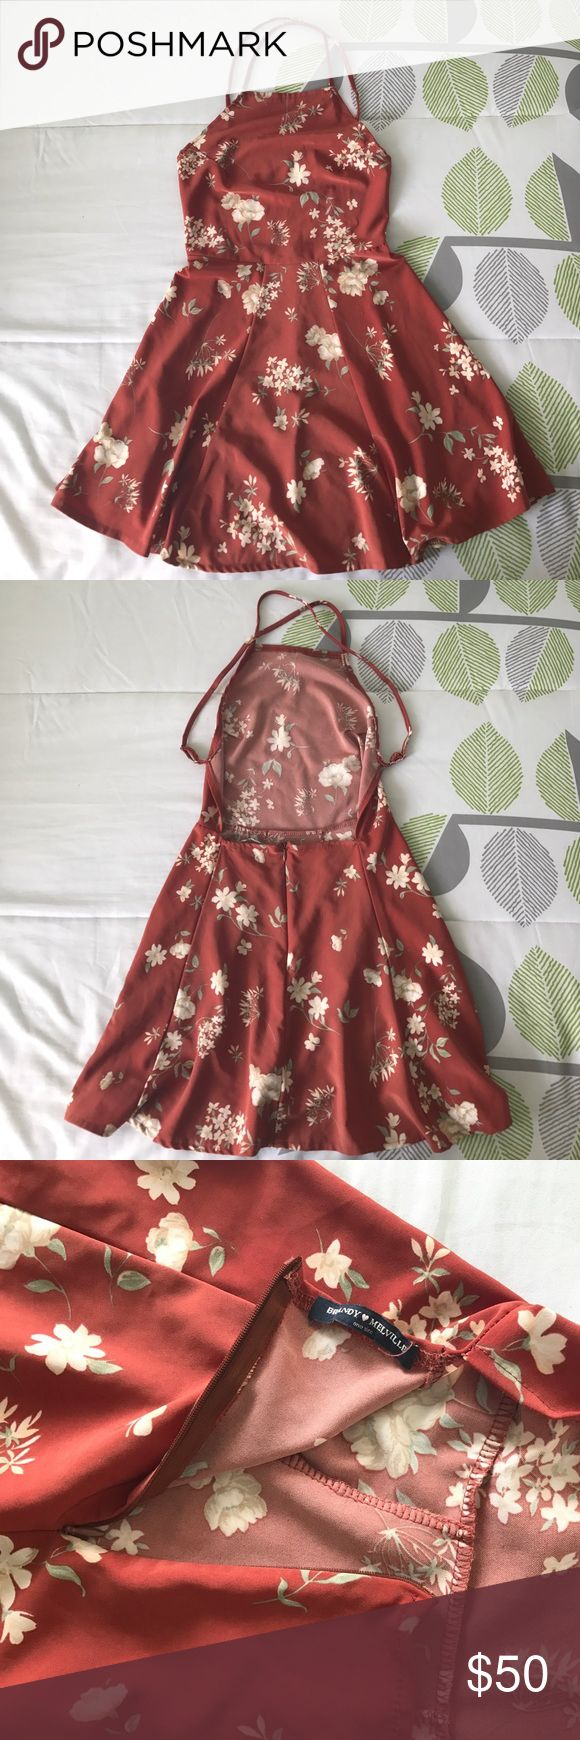 Brandy Melville Kirsten Dress Floral Brandy Melville Kirsten Dress. One Size but would fit an XS or Small the best. This dress is so cute but it's too short on me, I'm 5'8 for reference. There's a zipper in the back, no flaws. Feel free to ask questions! My price is pretty firm but feel free to make an offer Brandy Melville Dresses Backless